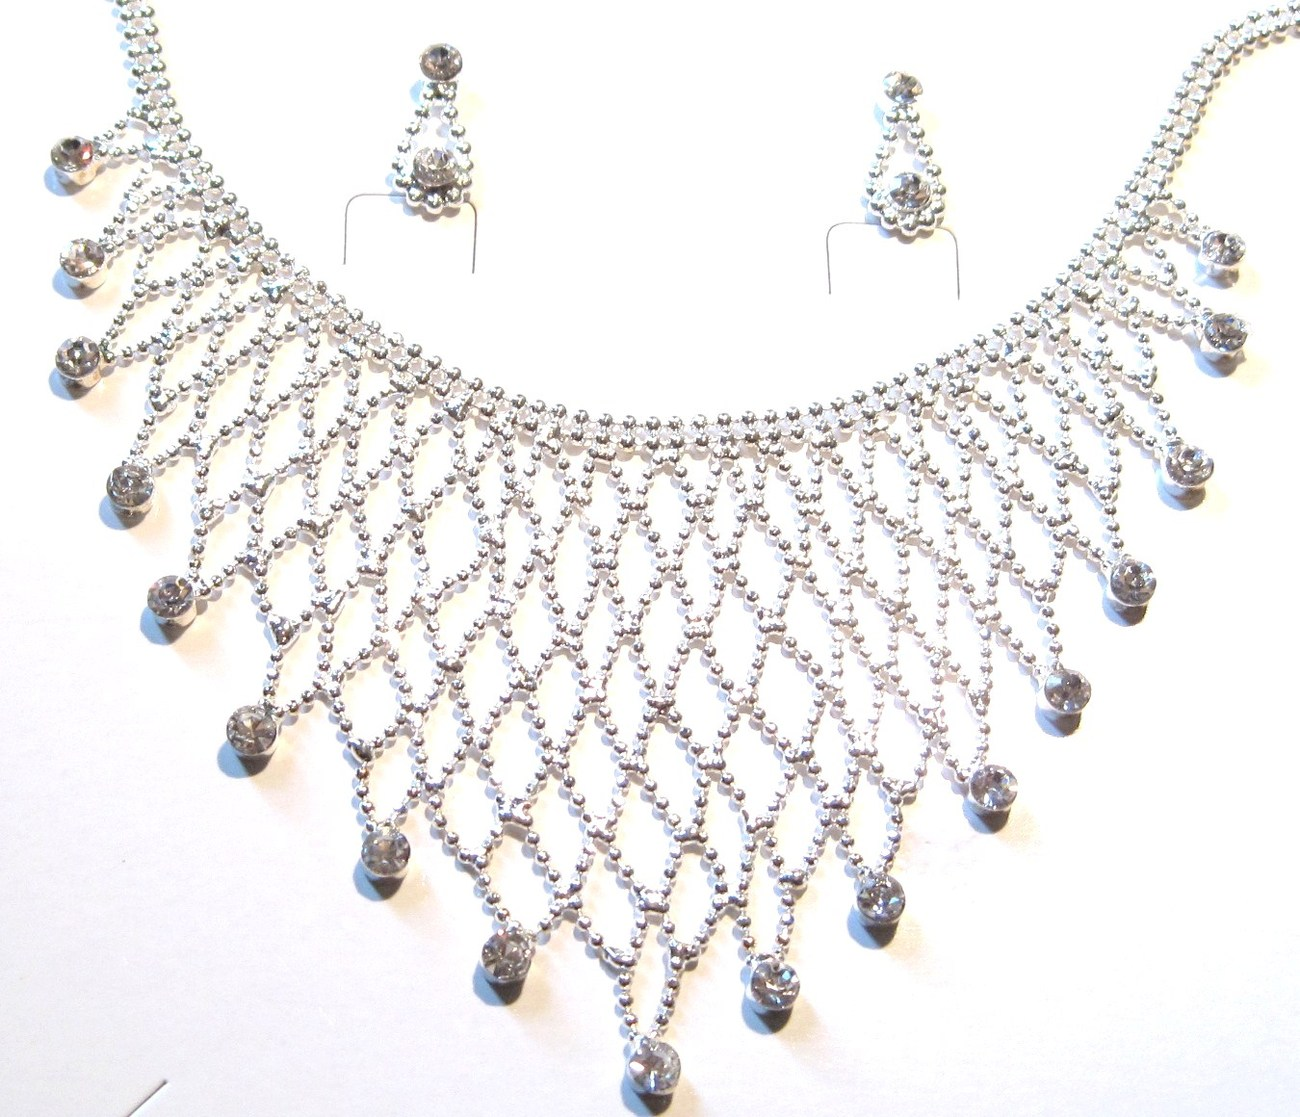 NP03 Exquisite Crystal Ball Chain Bib Necklace and Earrings Set